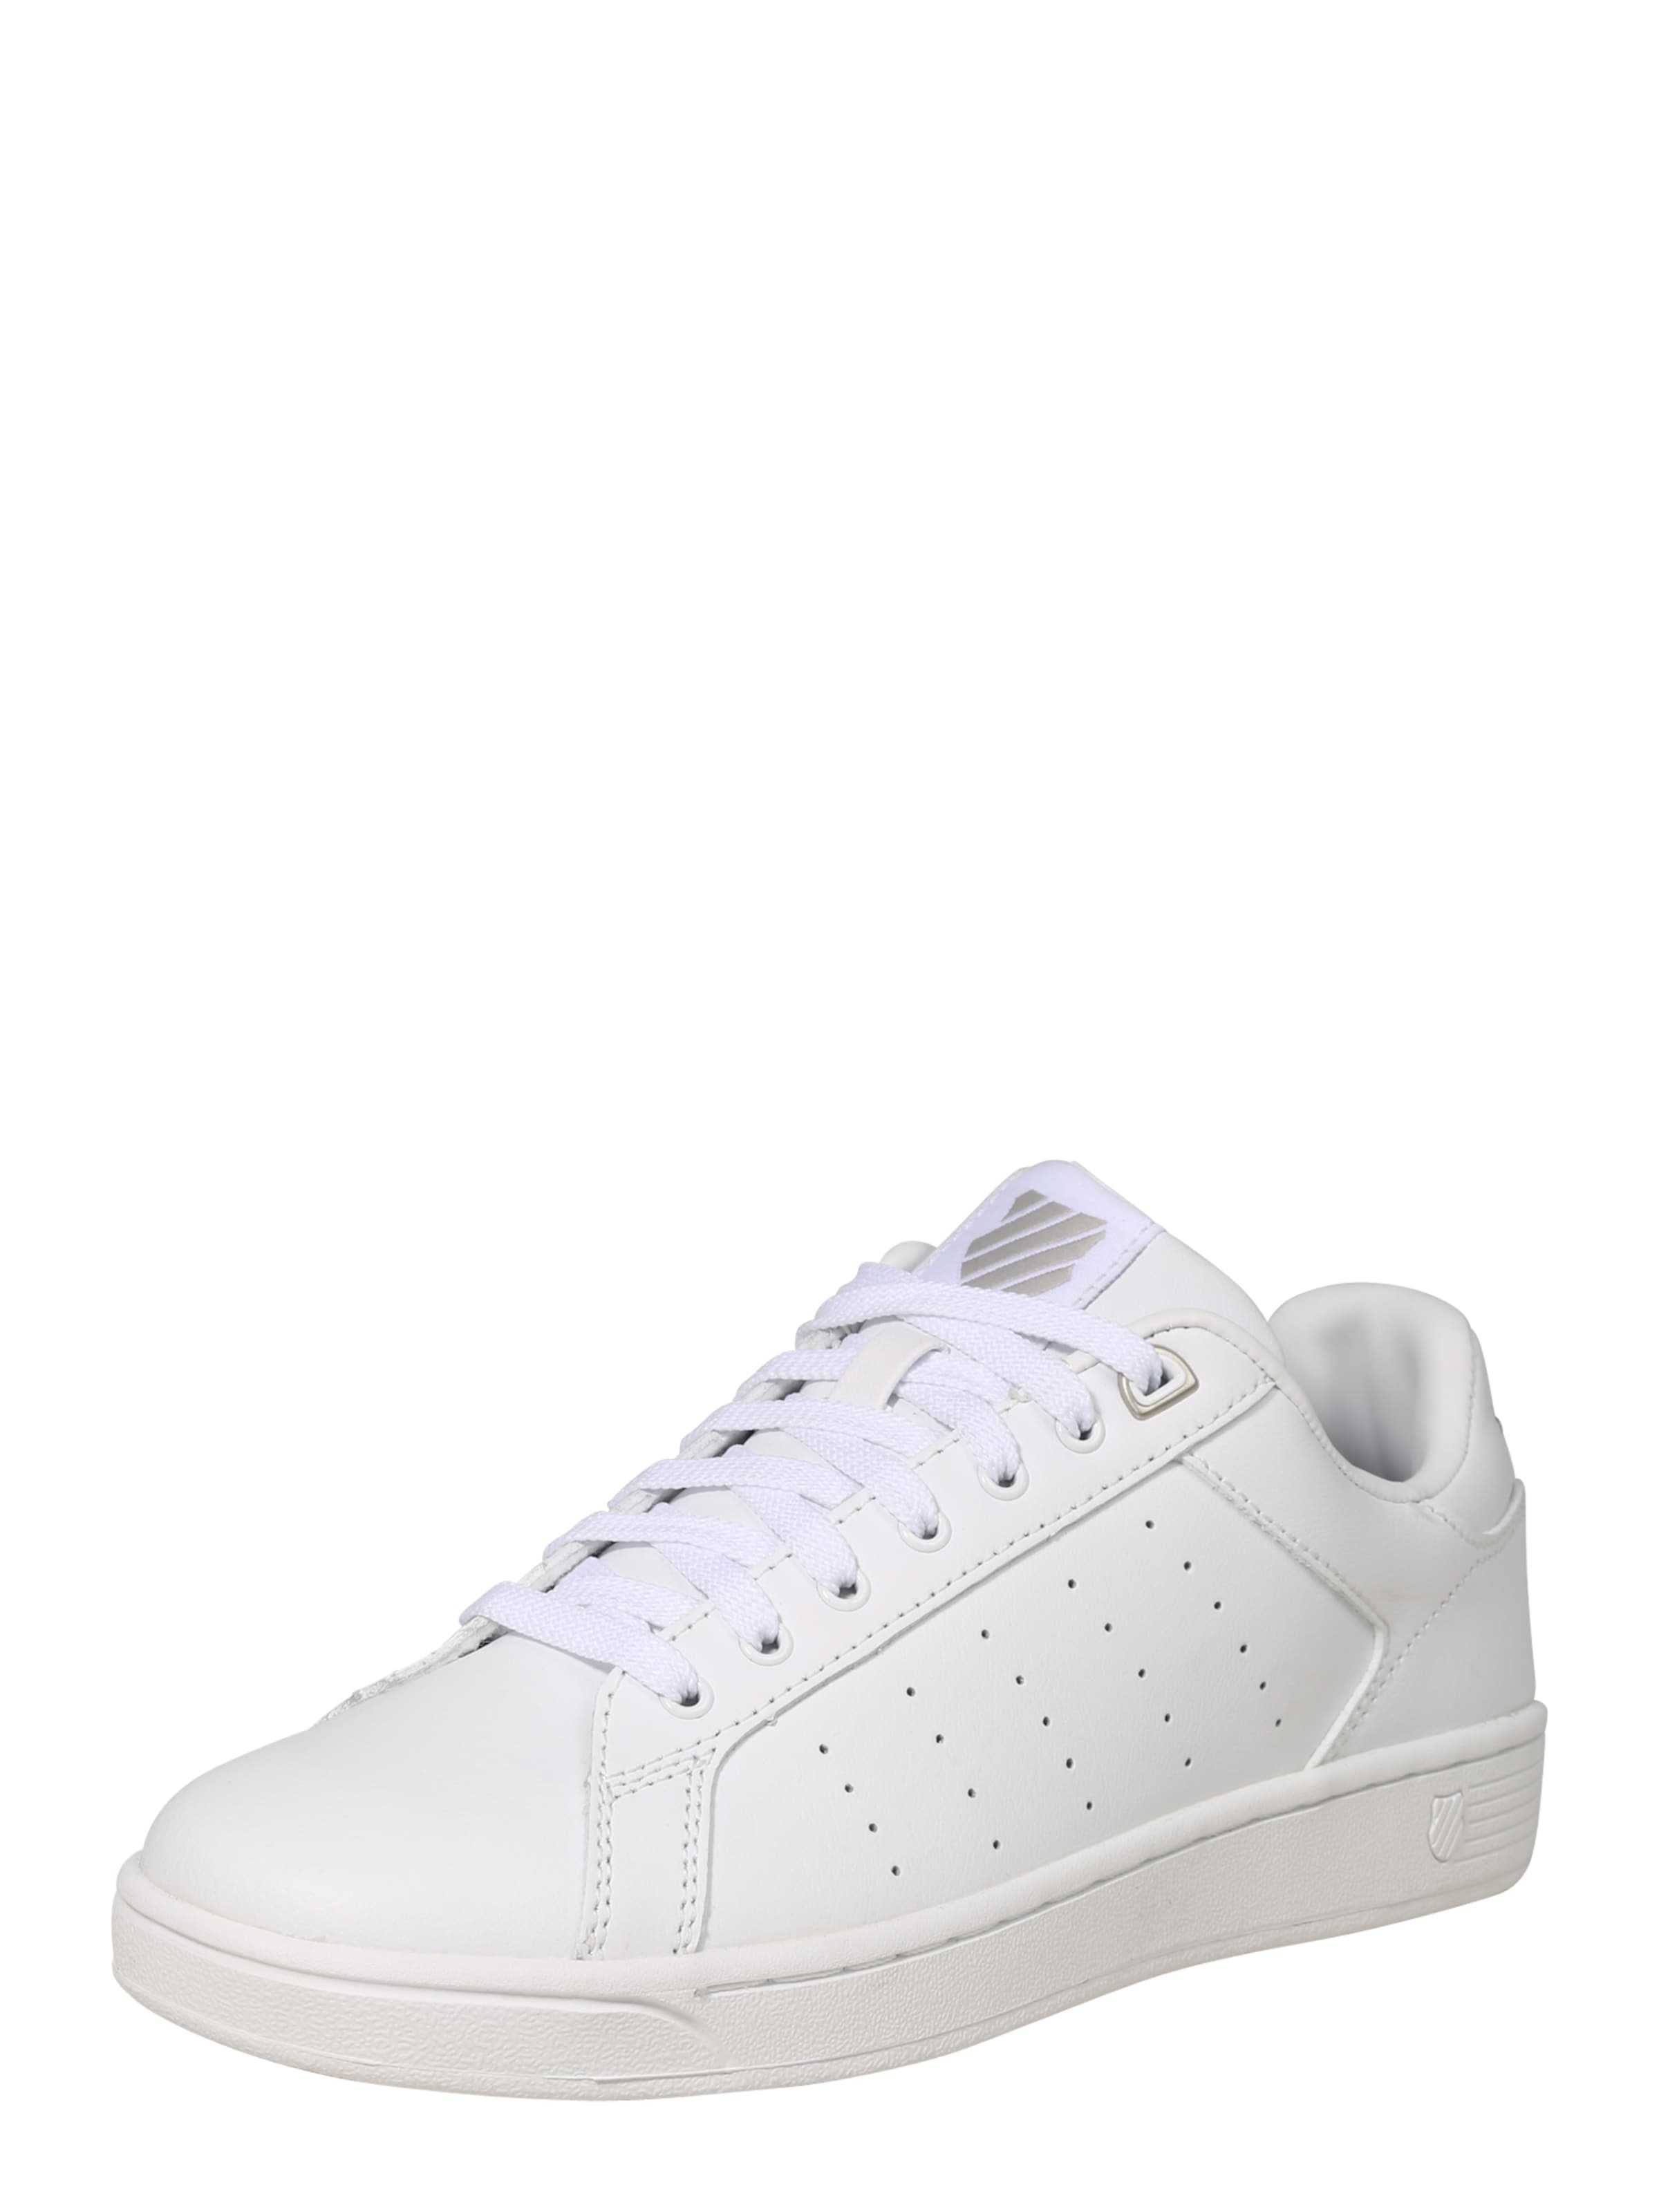 Baskets Basses Blanc Court swiss 'clean Cmf' En K qpSMGzVU